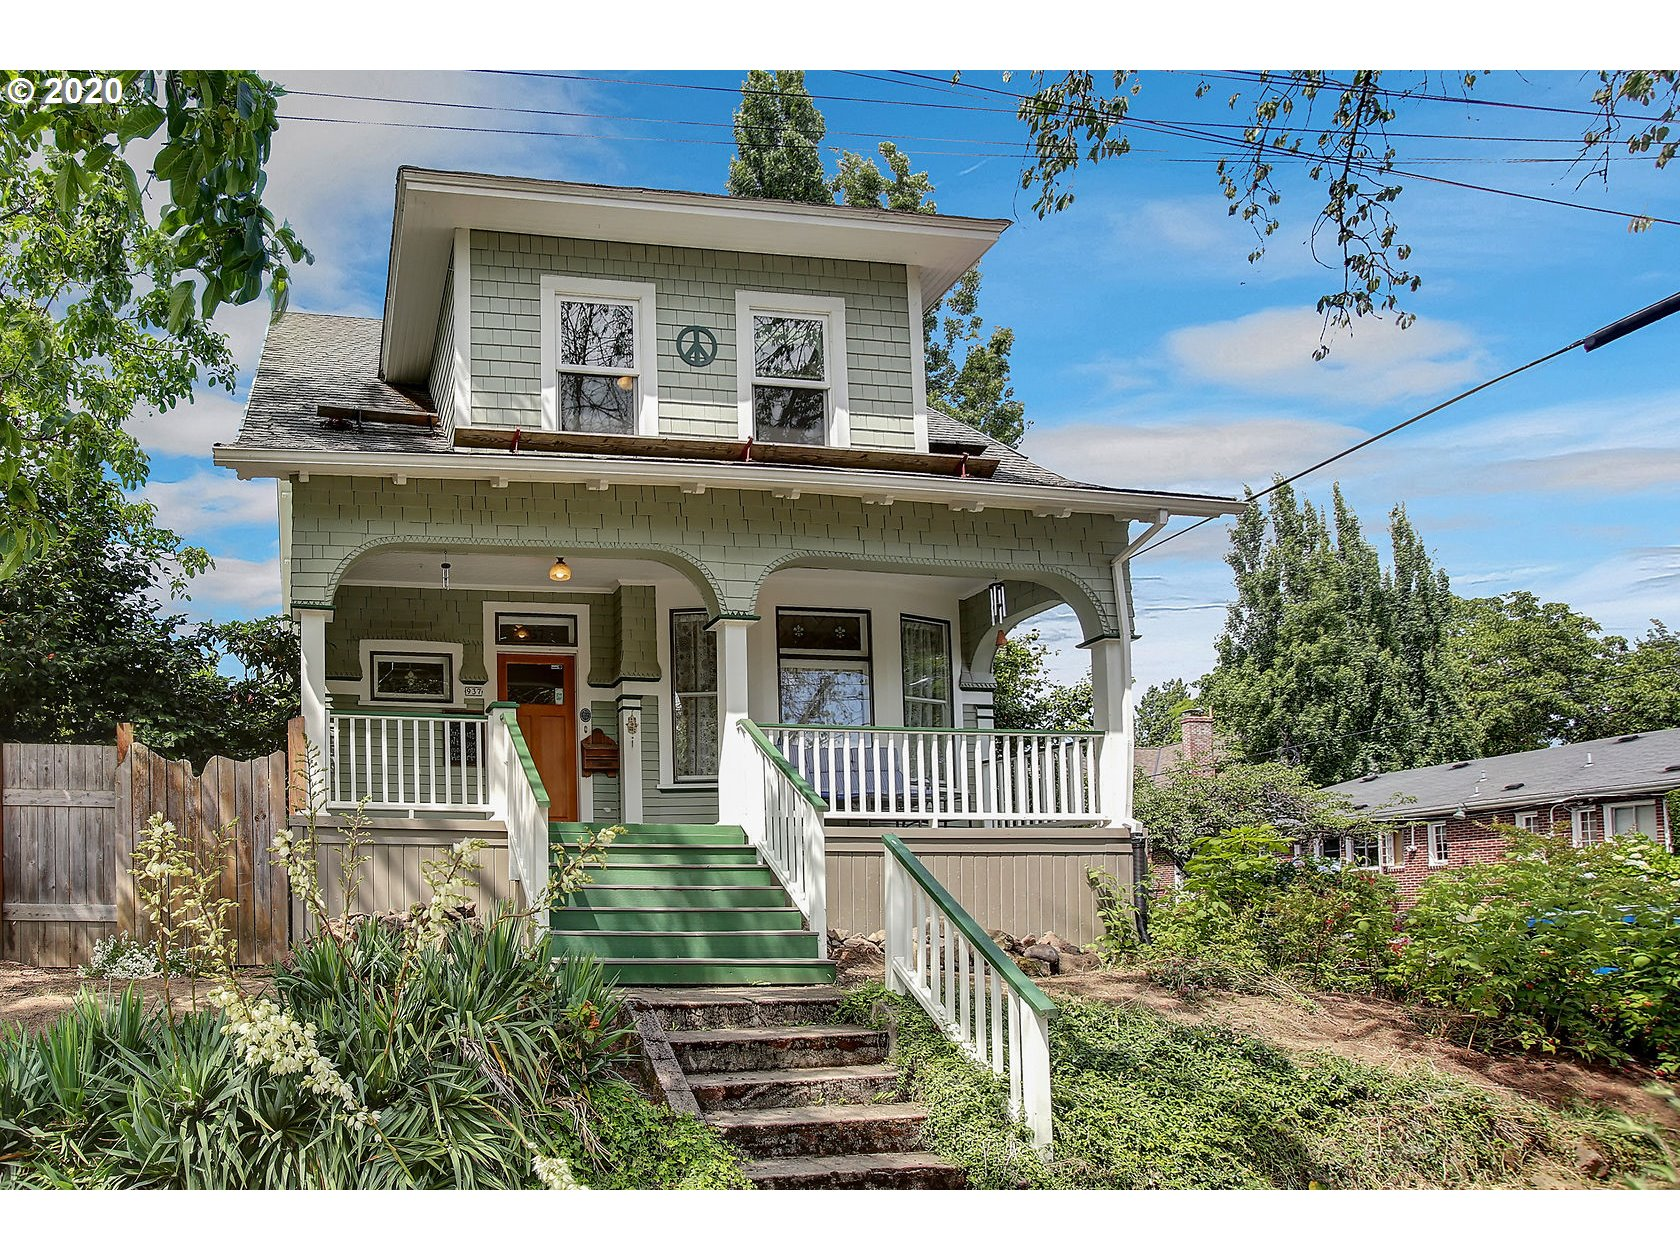 """Urban Paradise, enjoy a Victorian, craftsman hybrid. Filled with charm, quality and care of yesteryear. Tall ceilings, stained glass, inviting front porch and tons of personality. R1 zoning for density, amazing """"tiny home like studio"""" large private garden and play area."""